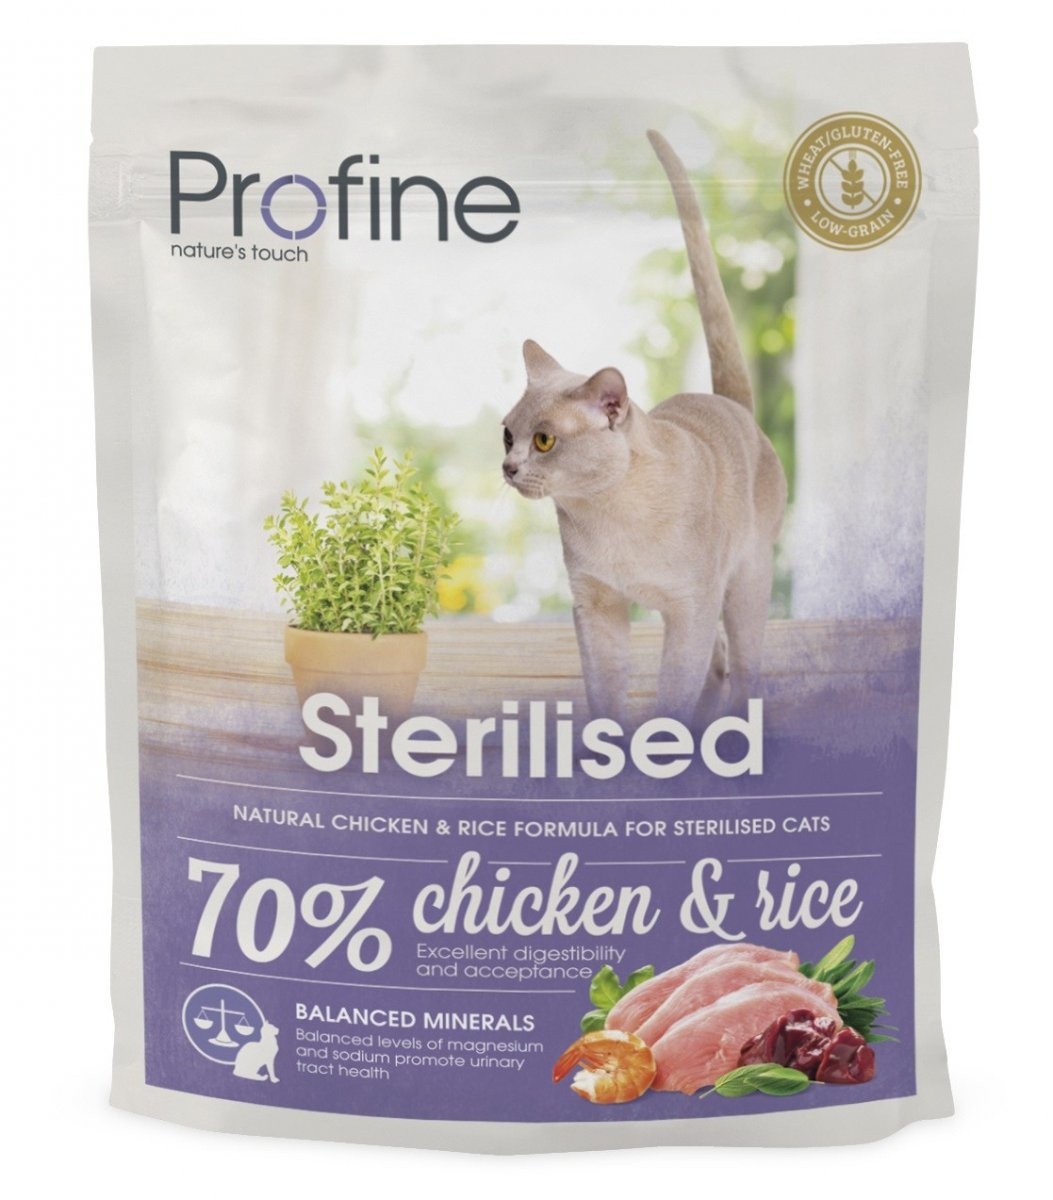 NEW Profine Cat Sterilized 300g